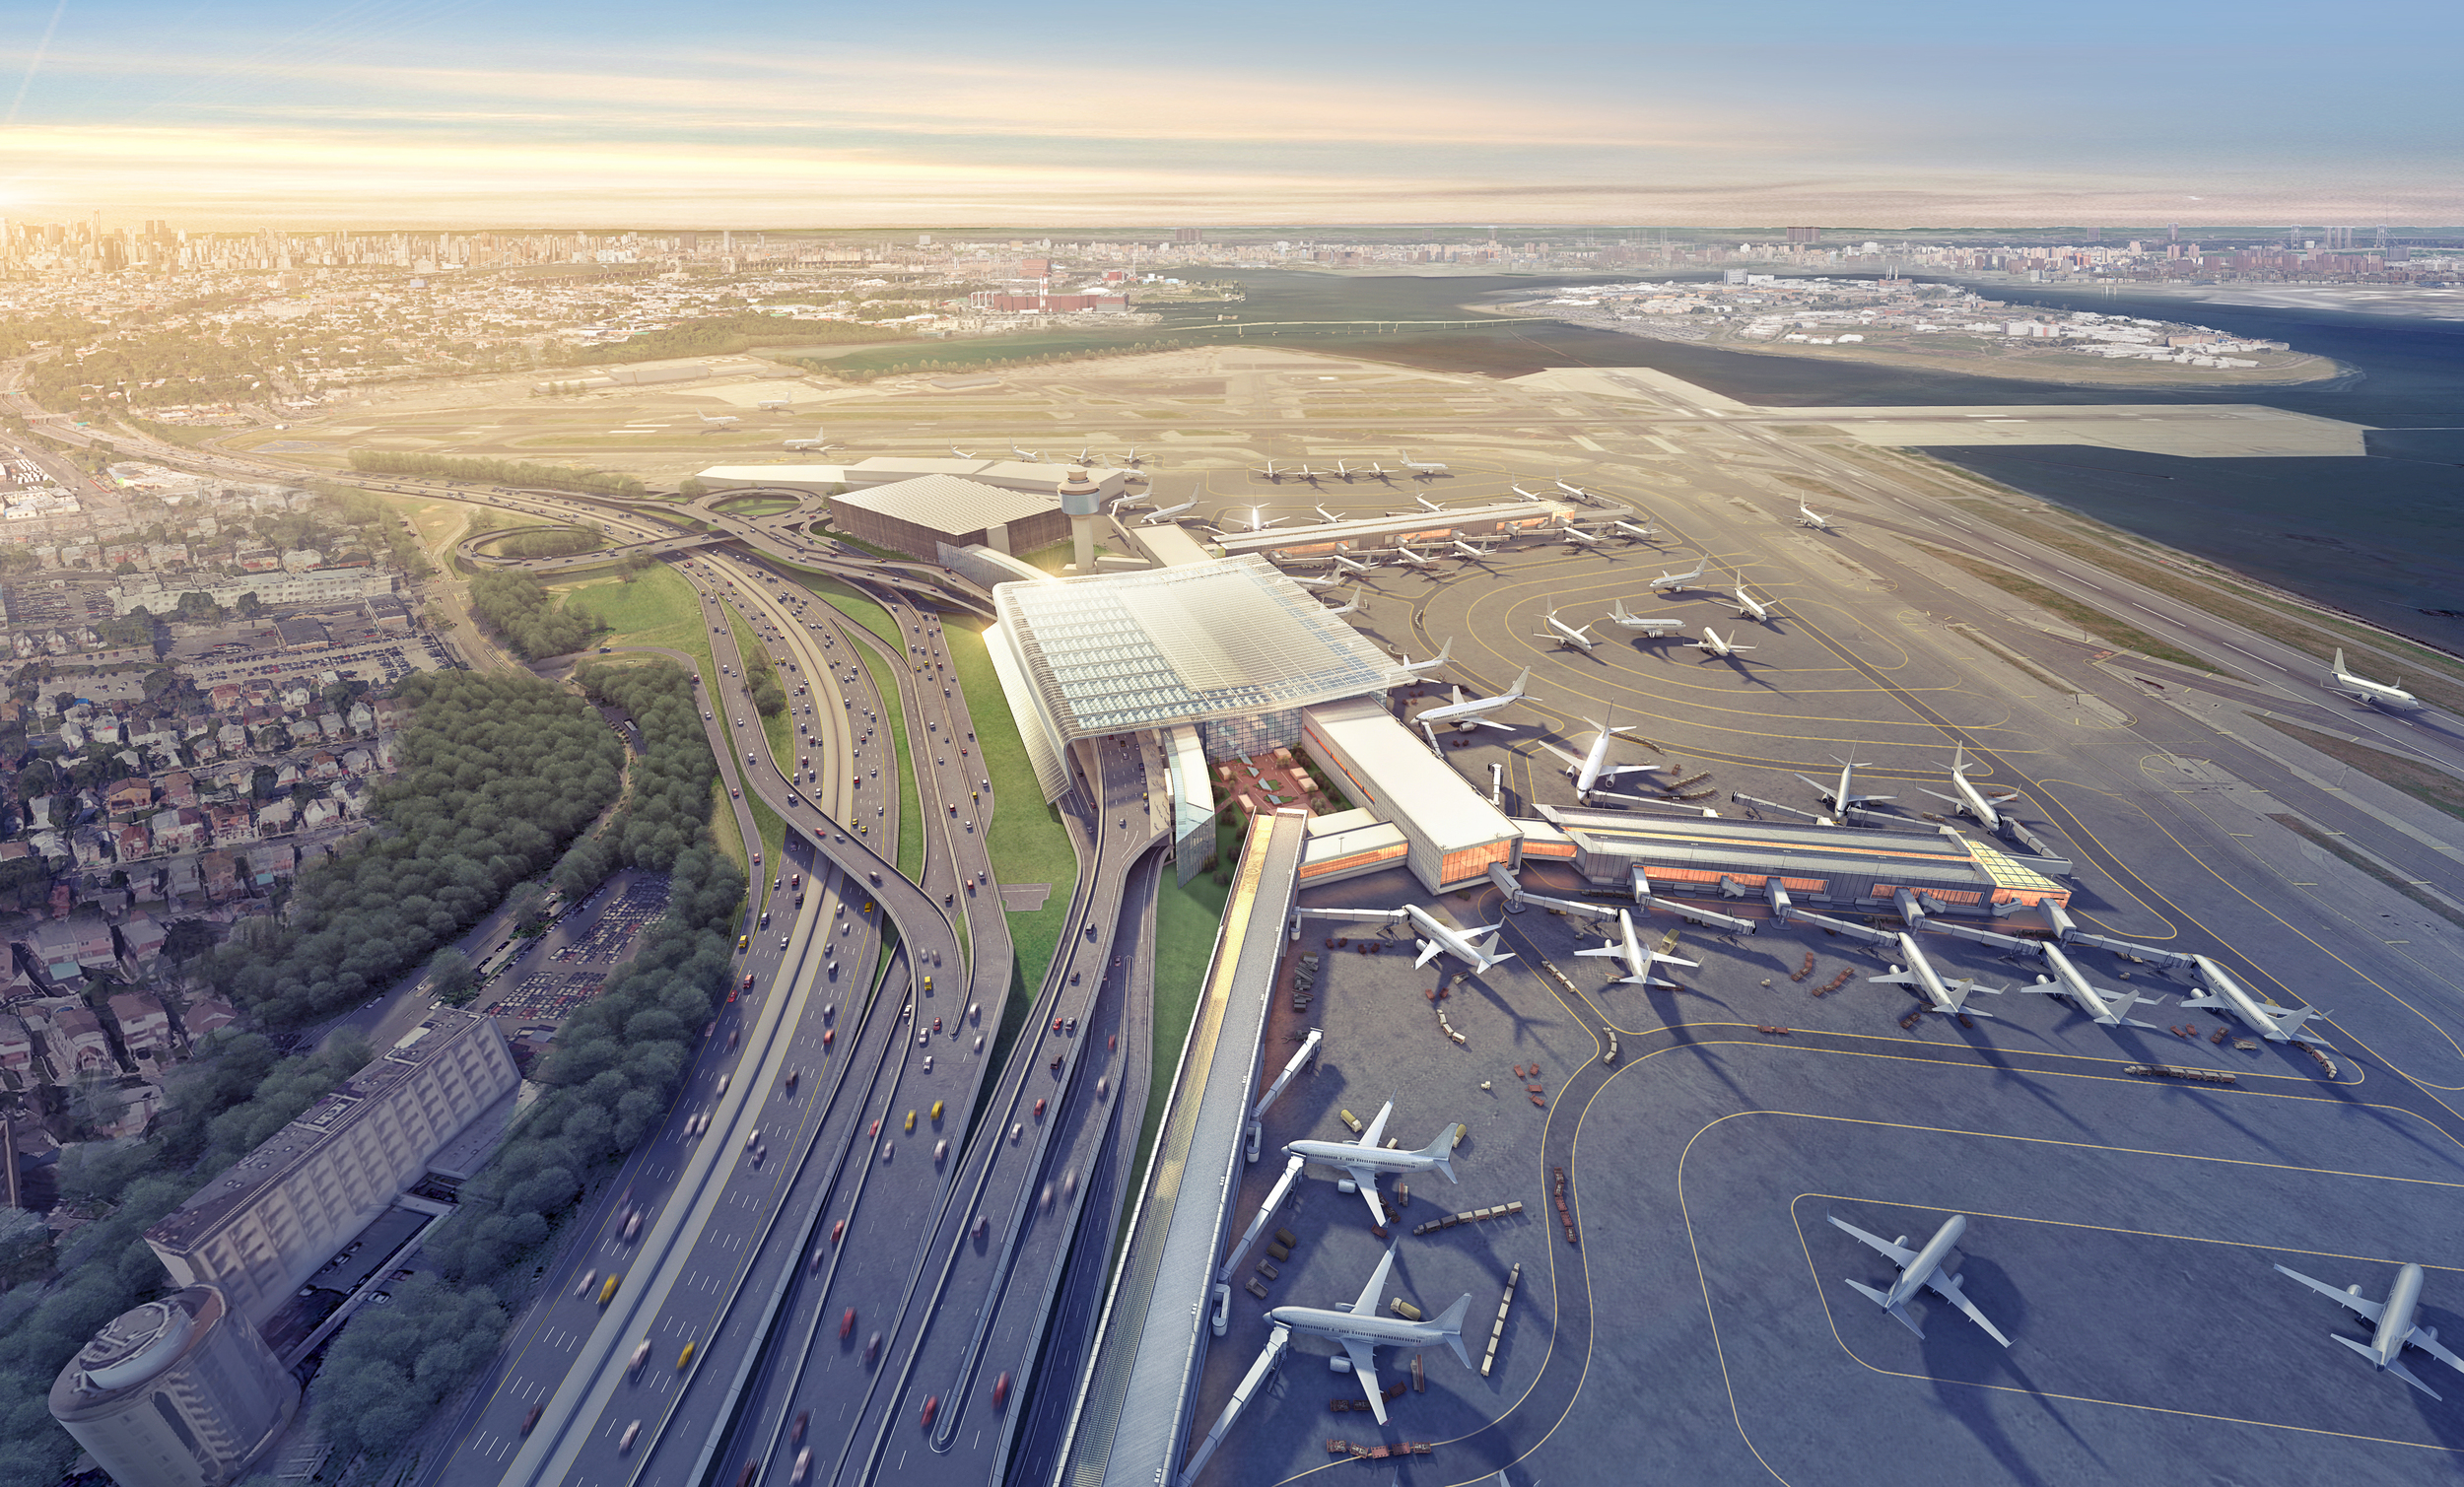 LaGuardia AIRPORT CONCEPT   New York, NY |  Image courtesy of Gensler